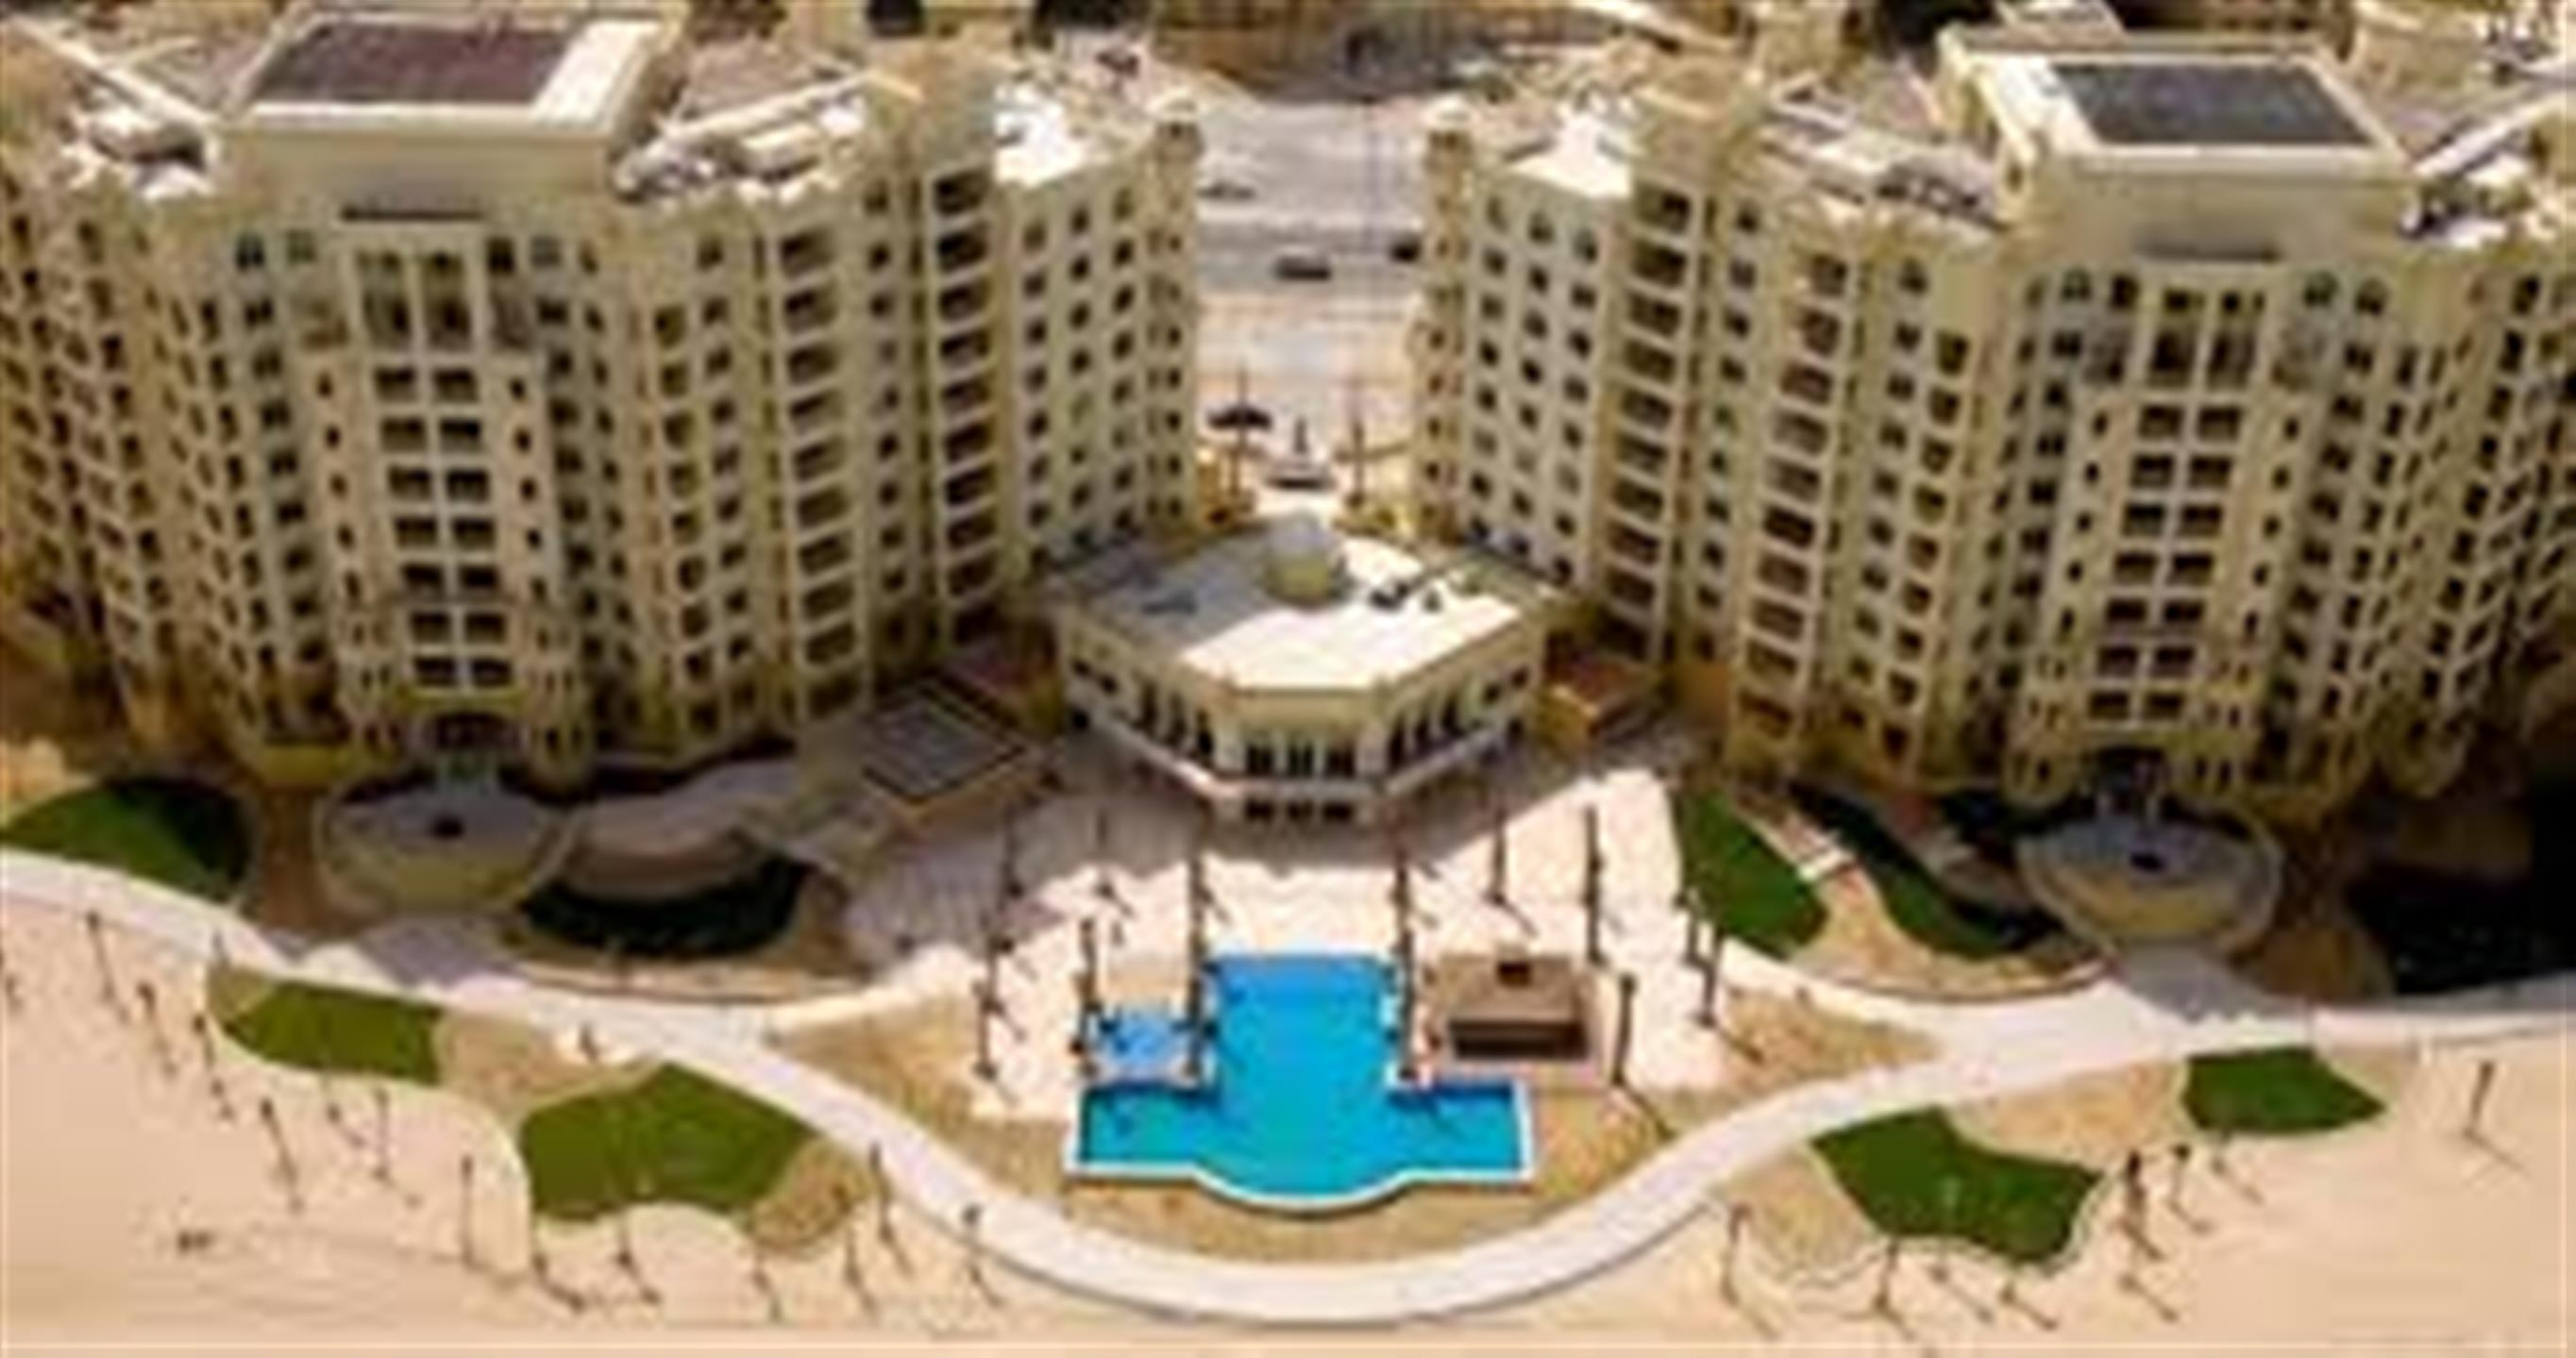 Residential Apartment/Condo, for Sale in United Arab Emirates, Dubai, Palm Jumeirah